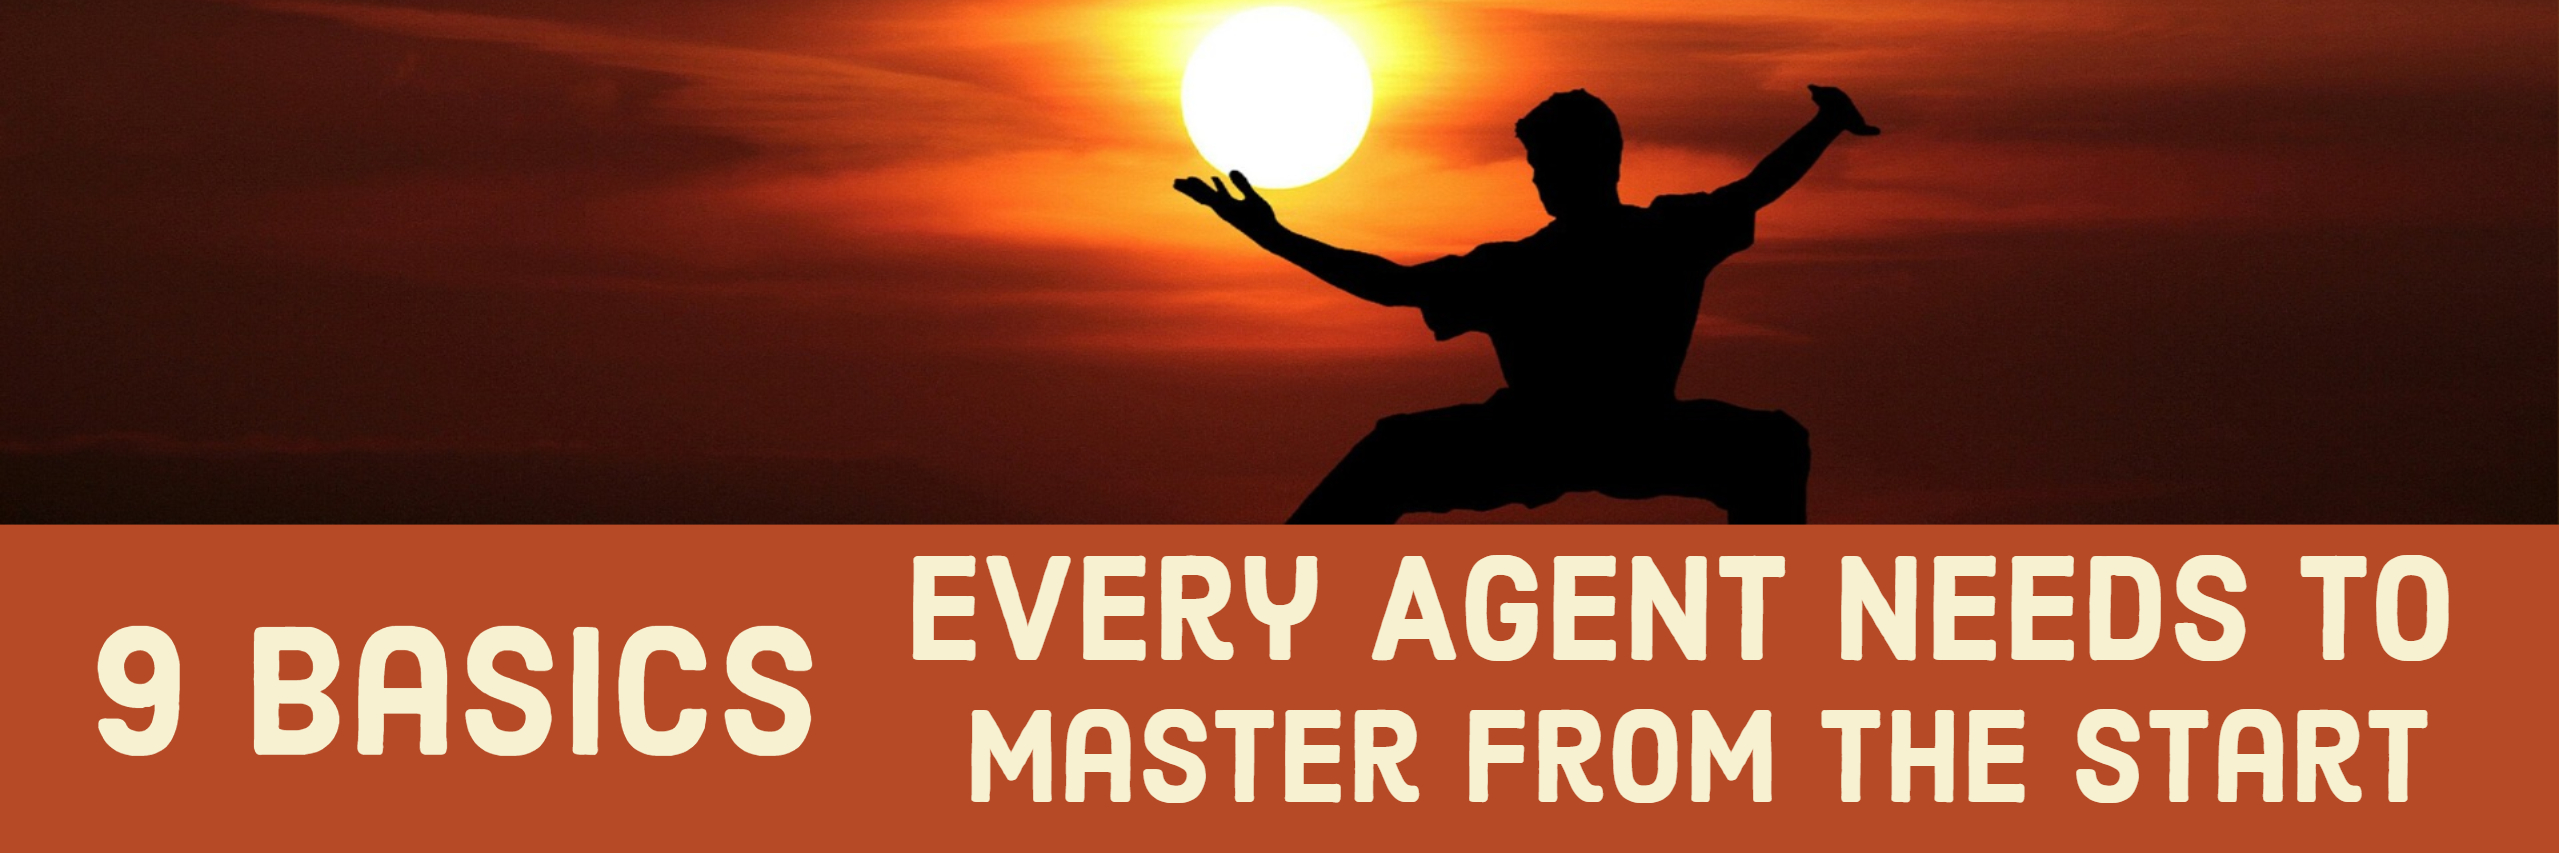 9 Basics Every Agent Needs to Master From The Start